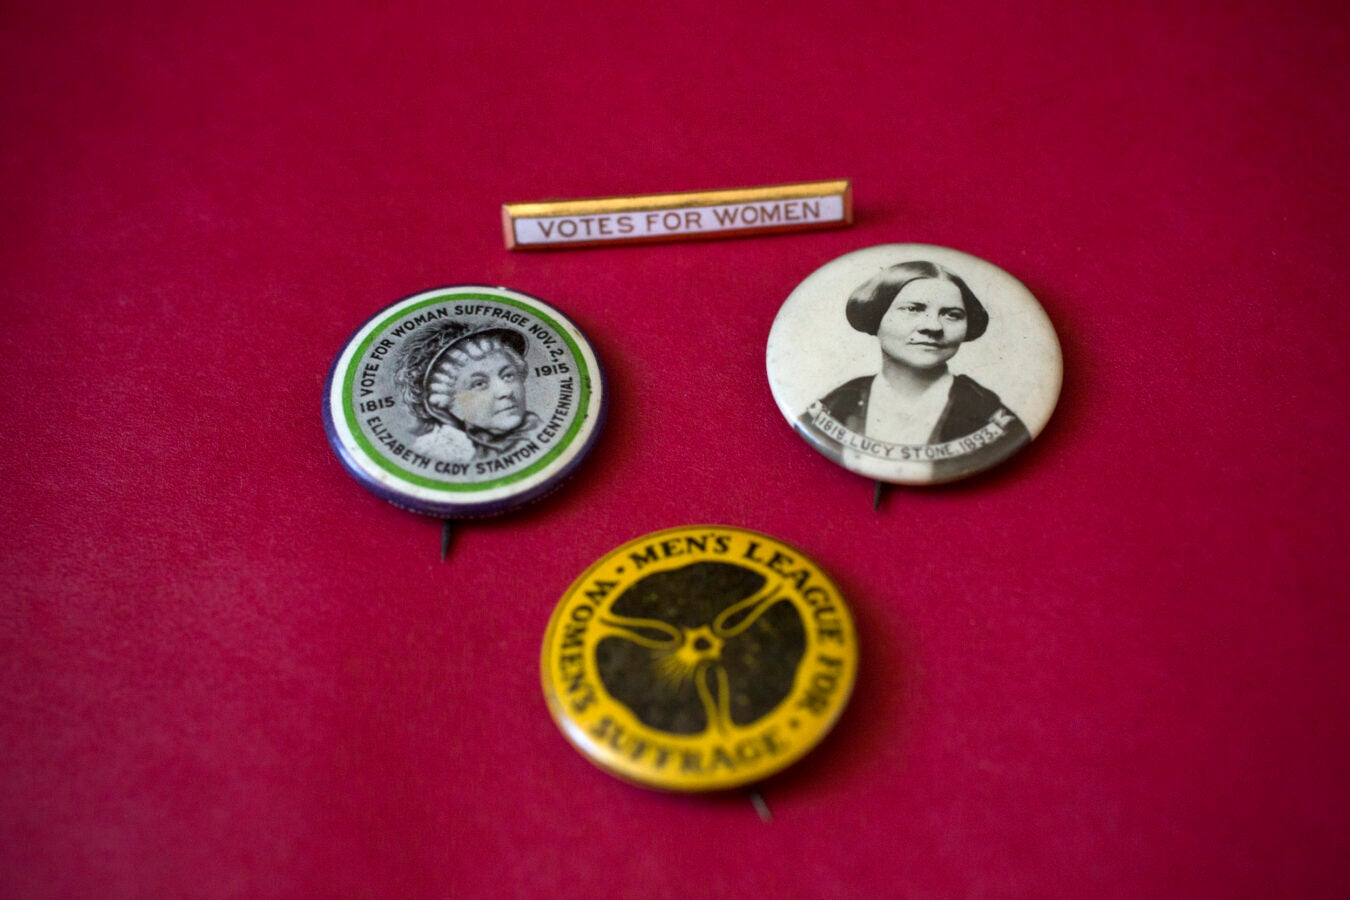 Women's suffrage buttons show the likenesses of early suffragists Elizabeth Cady Stanton and Lucy Stone.